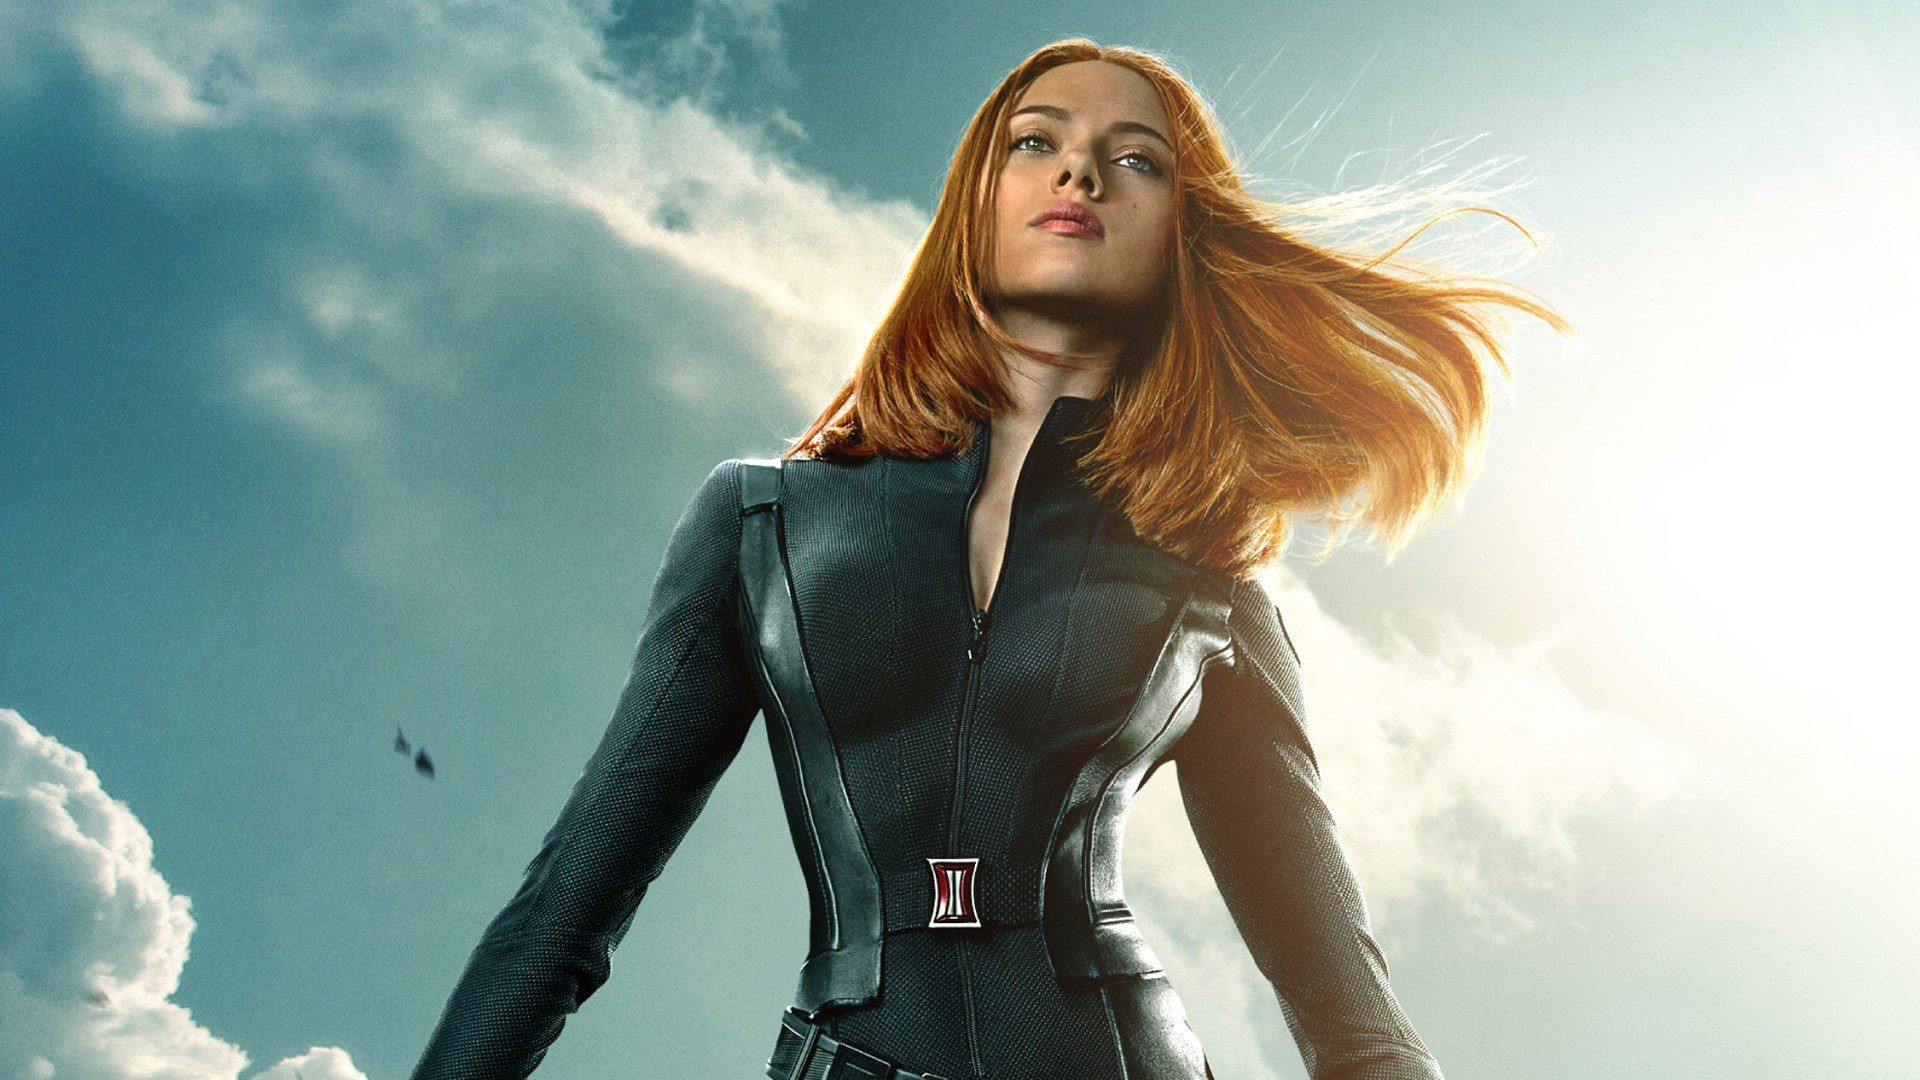 Black Widow Wallpaper Mobile Wallpapersimages Org